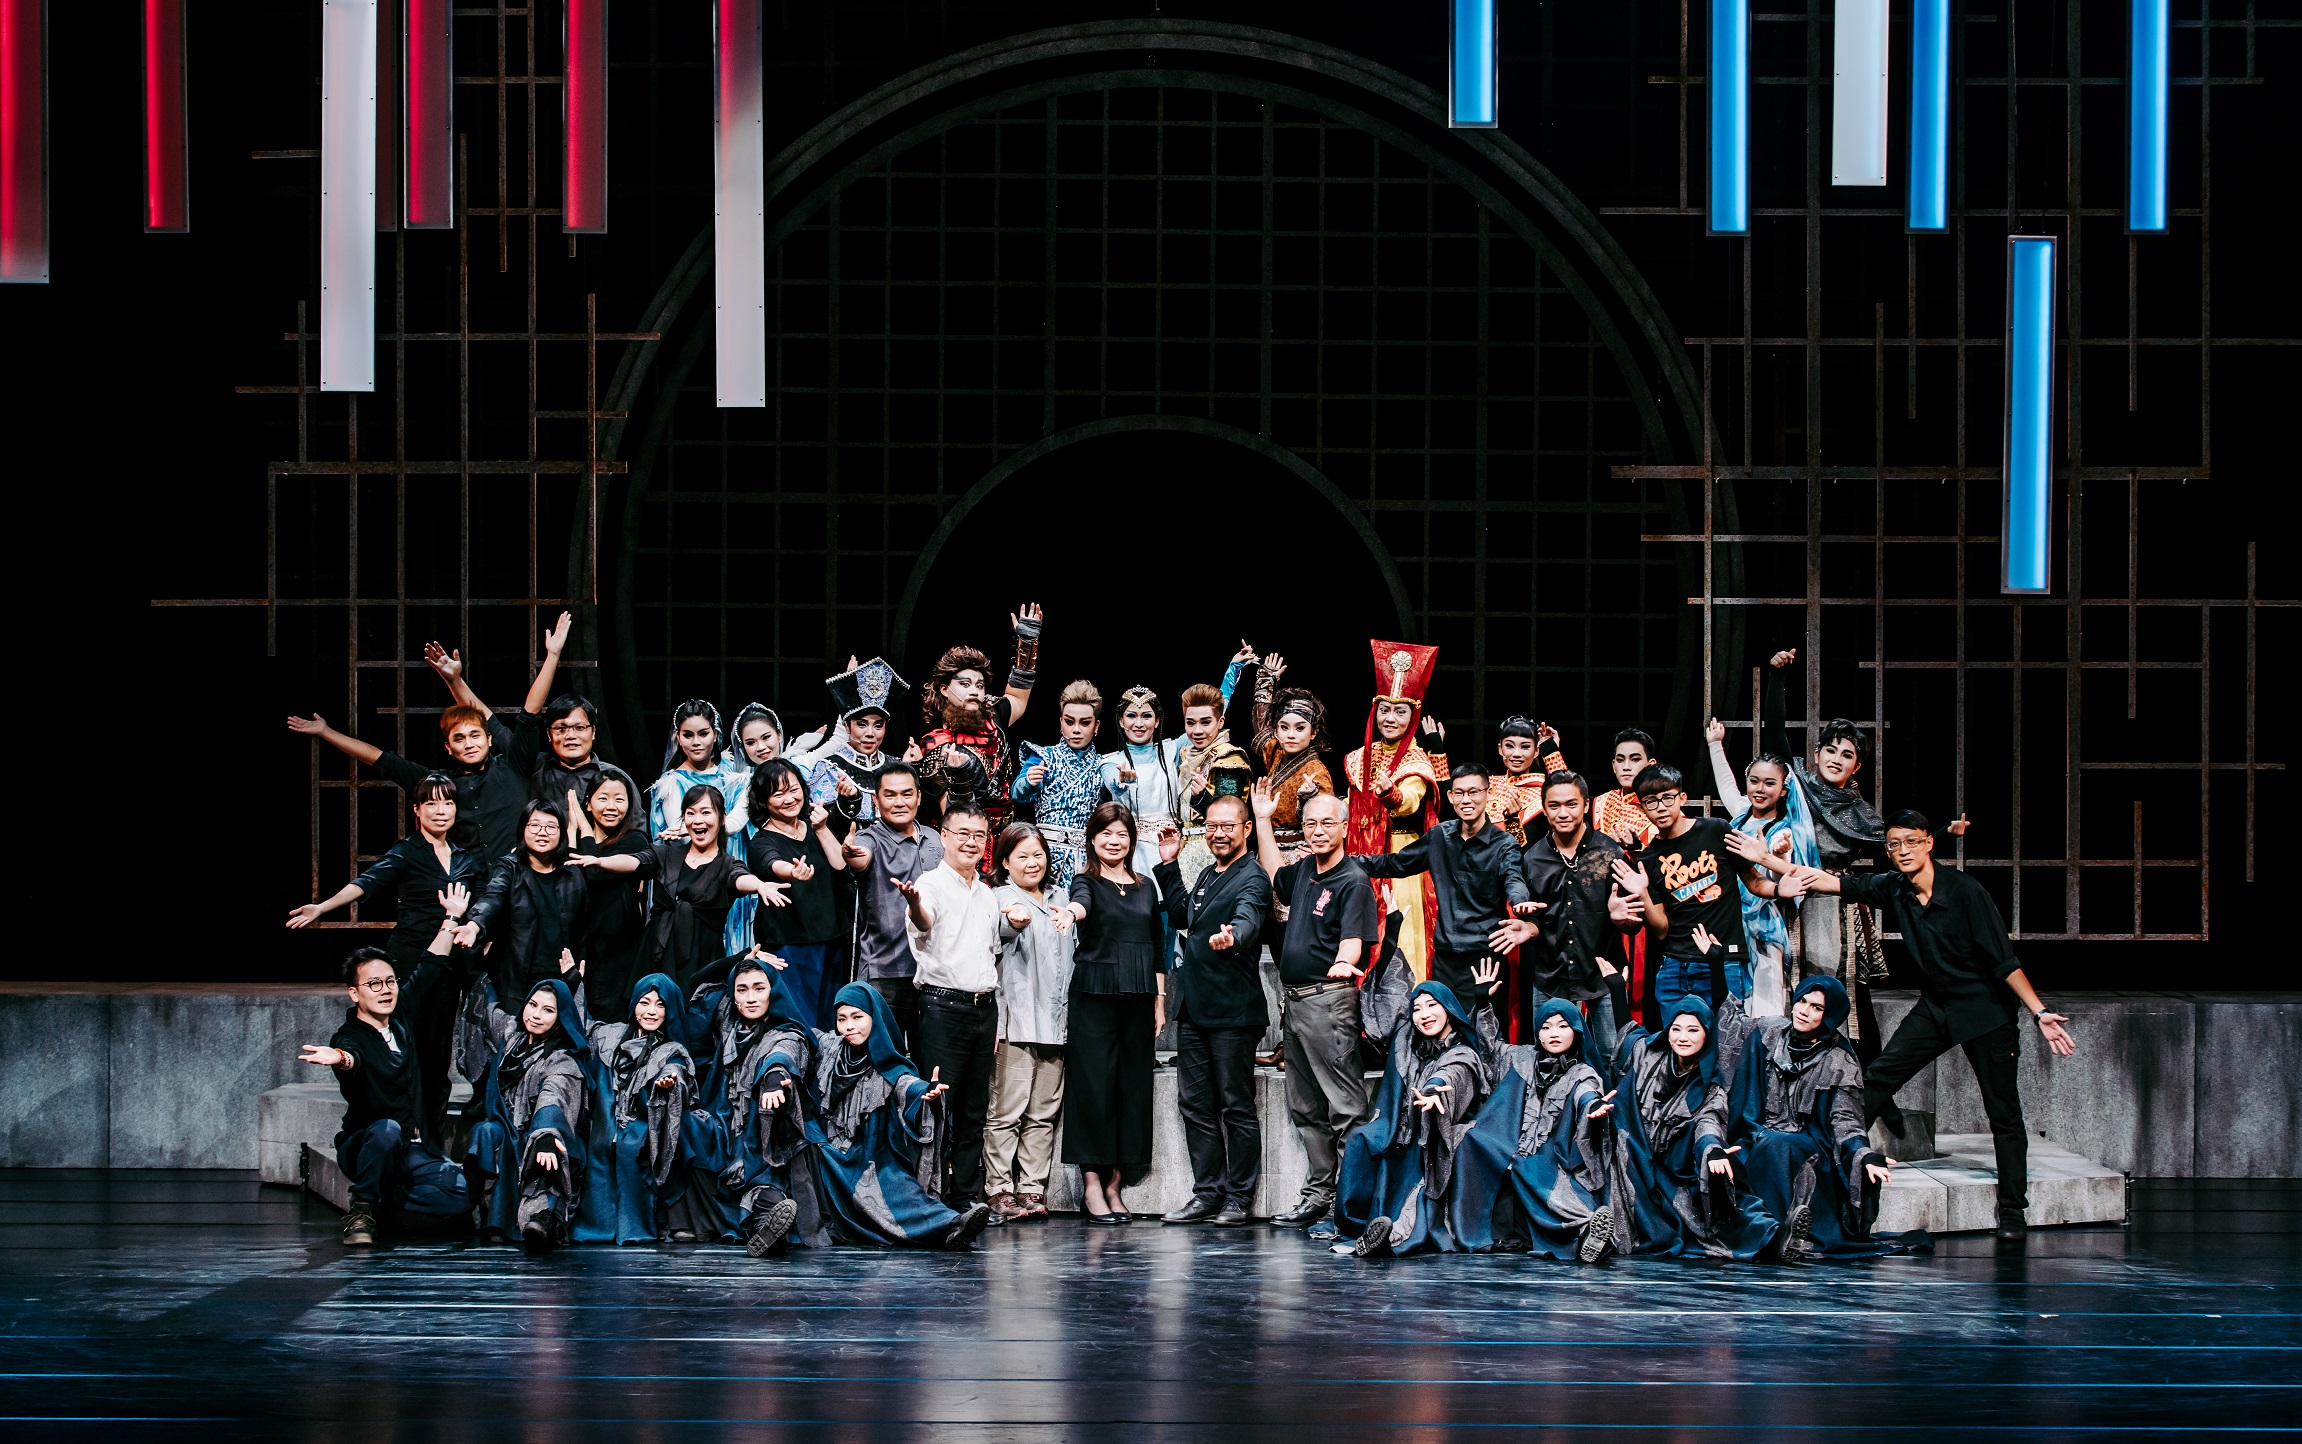 """Photo:Director Xu Bo-ang stated: """"This performance went through longer rehearsal times, involved work that was even more difficult than before, and inspected participating performers with professional standards, manifesting our efforts through the work."""